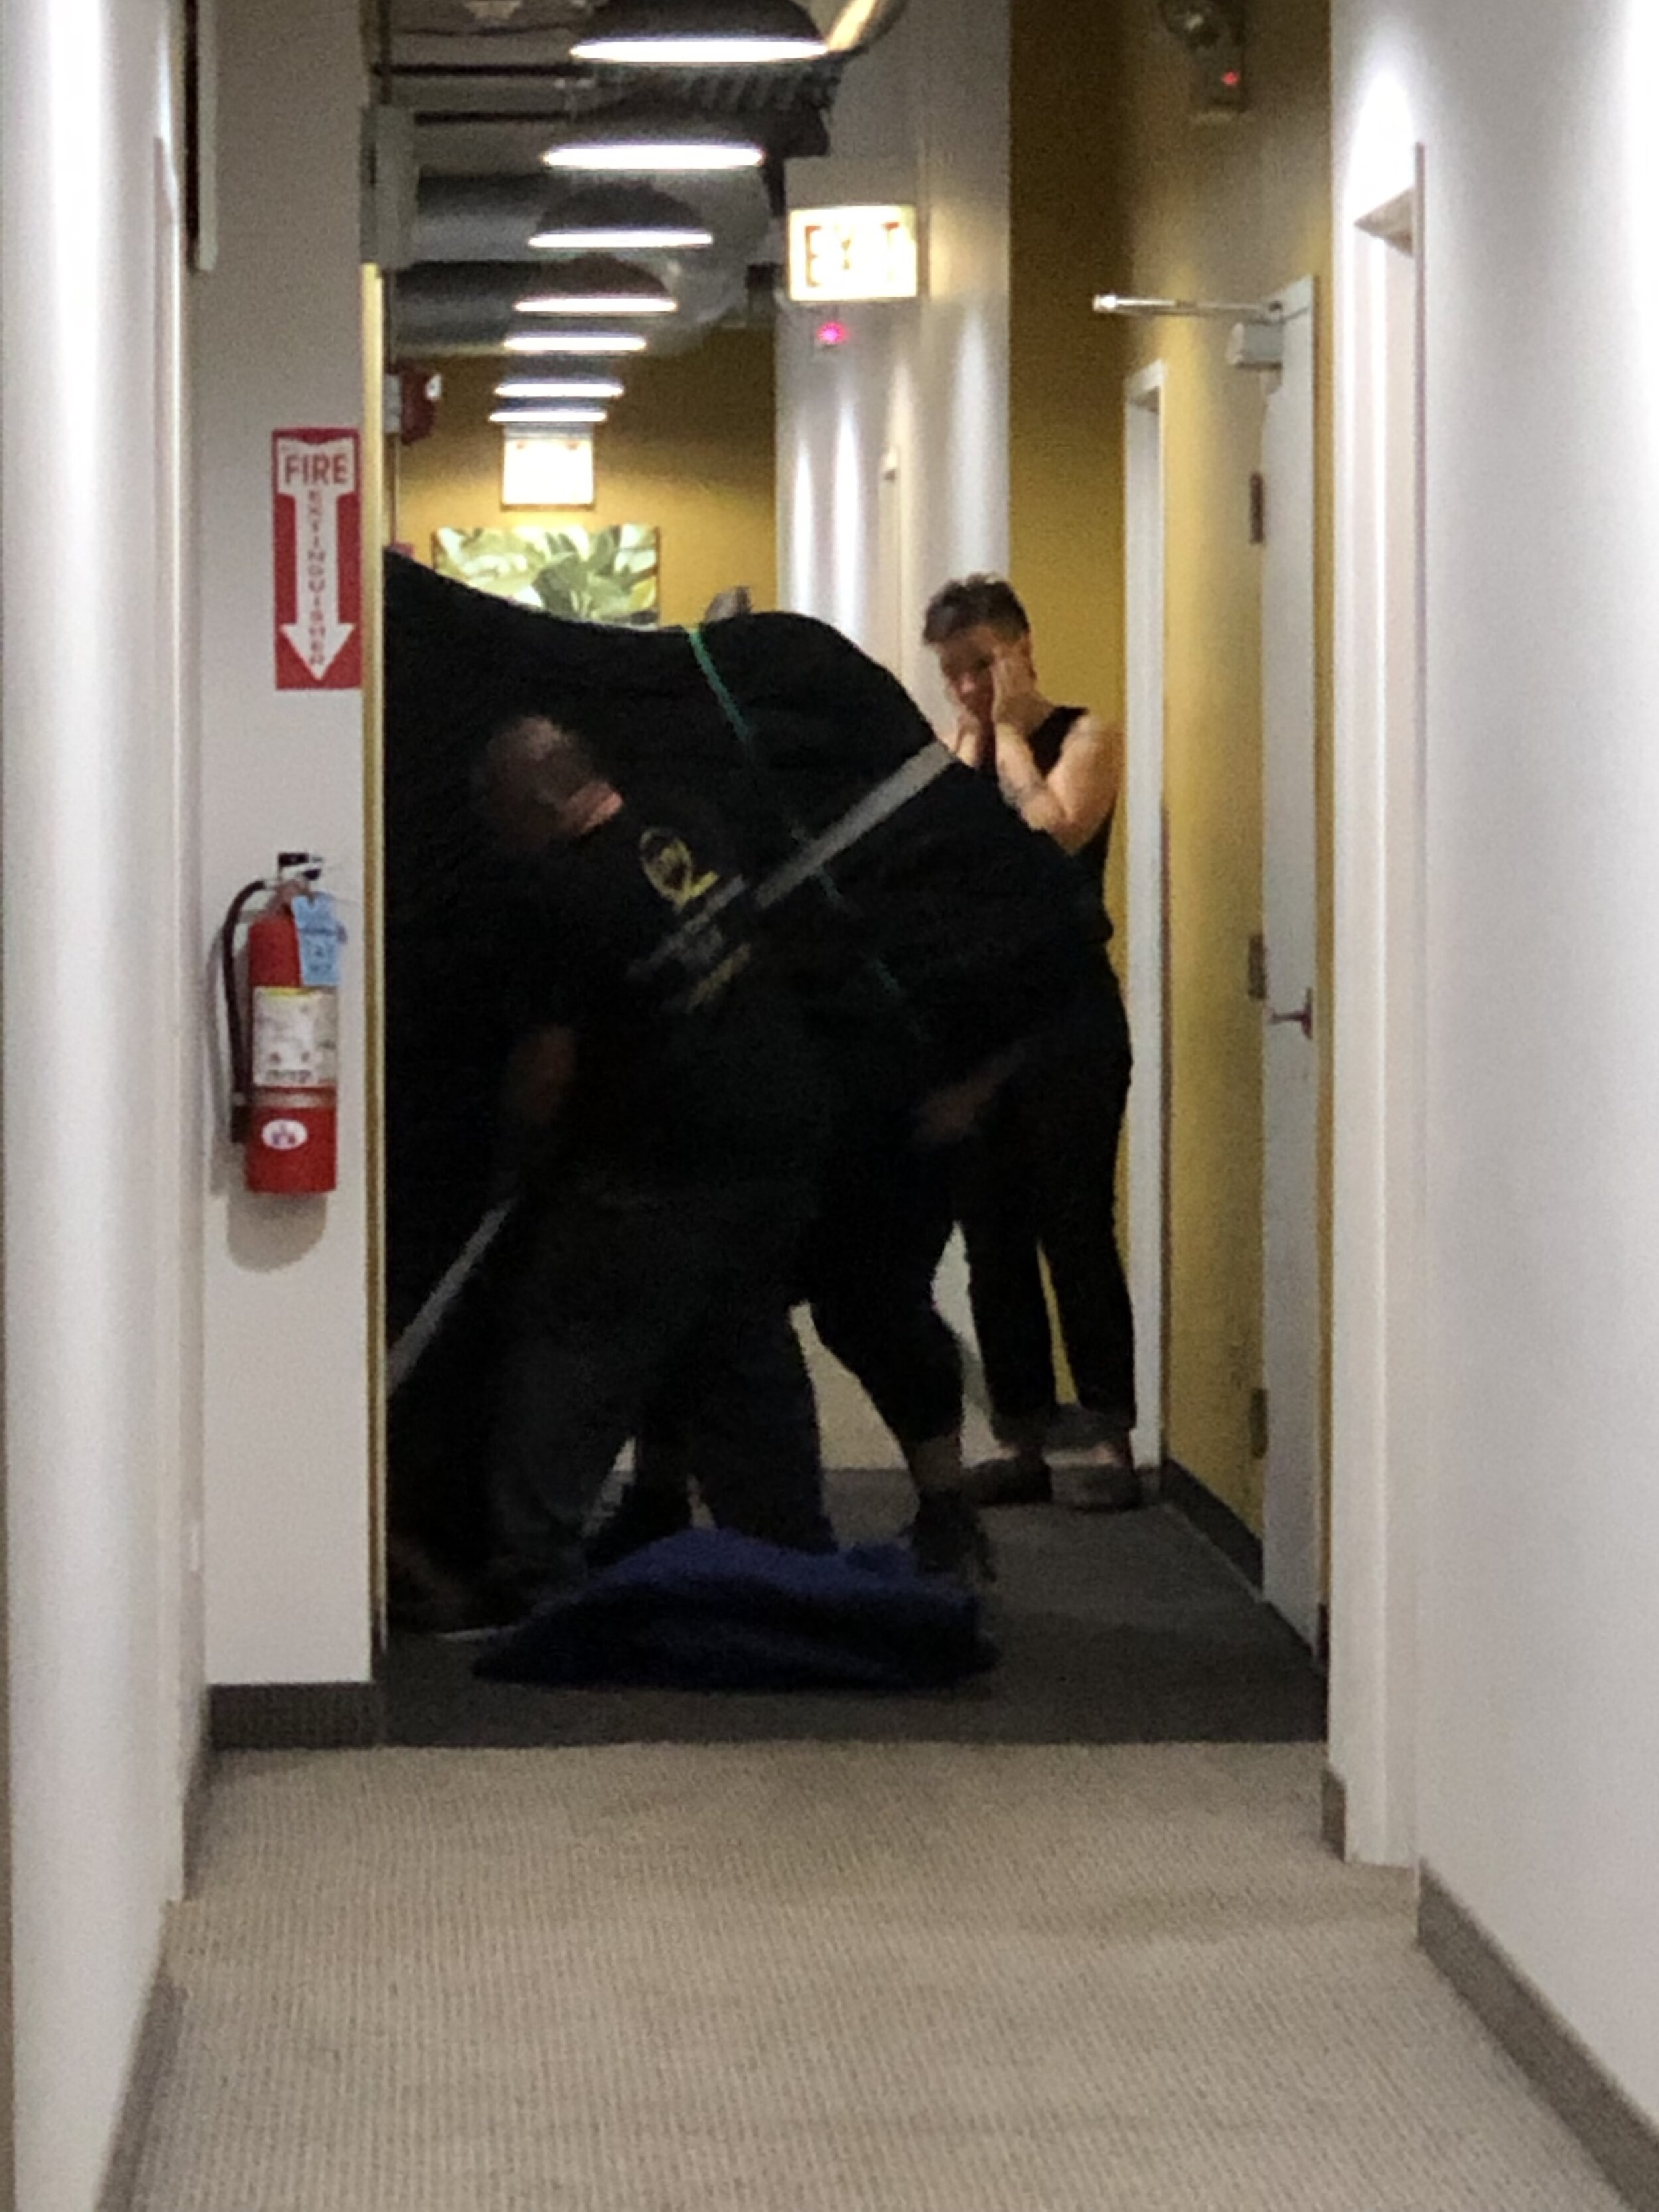 Turns out, the Boston 215 is about 500lbs heavier than its Steinway B counterpart. These guys were having to lift and inch it out of the elevator. Christa's face says it all.